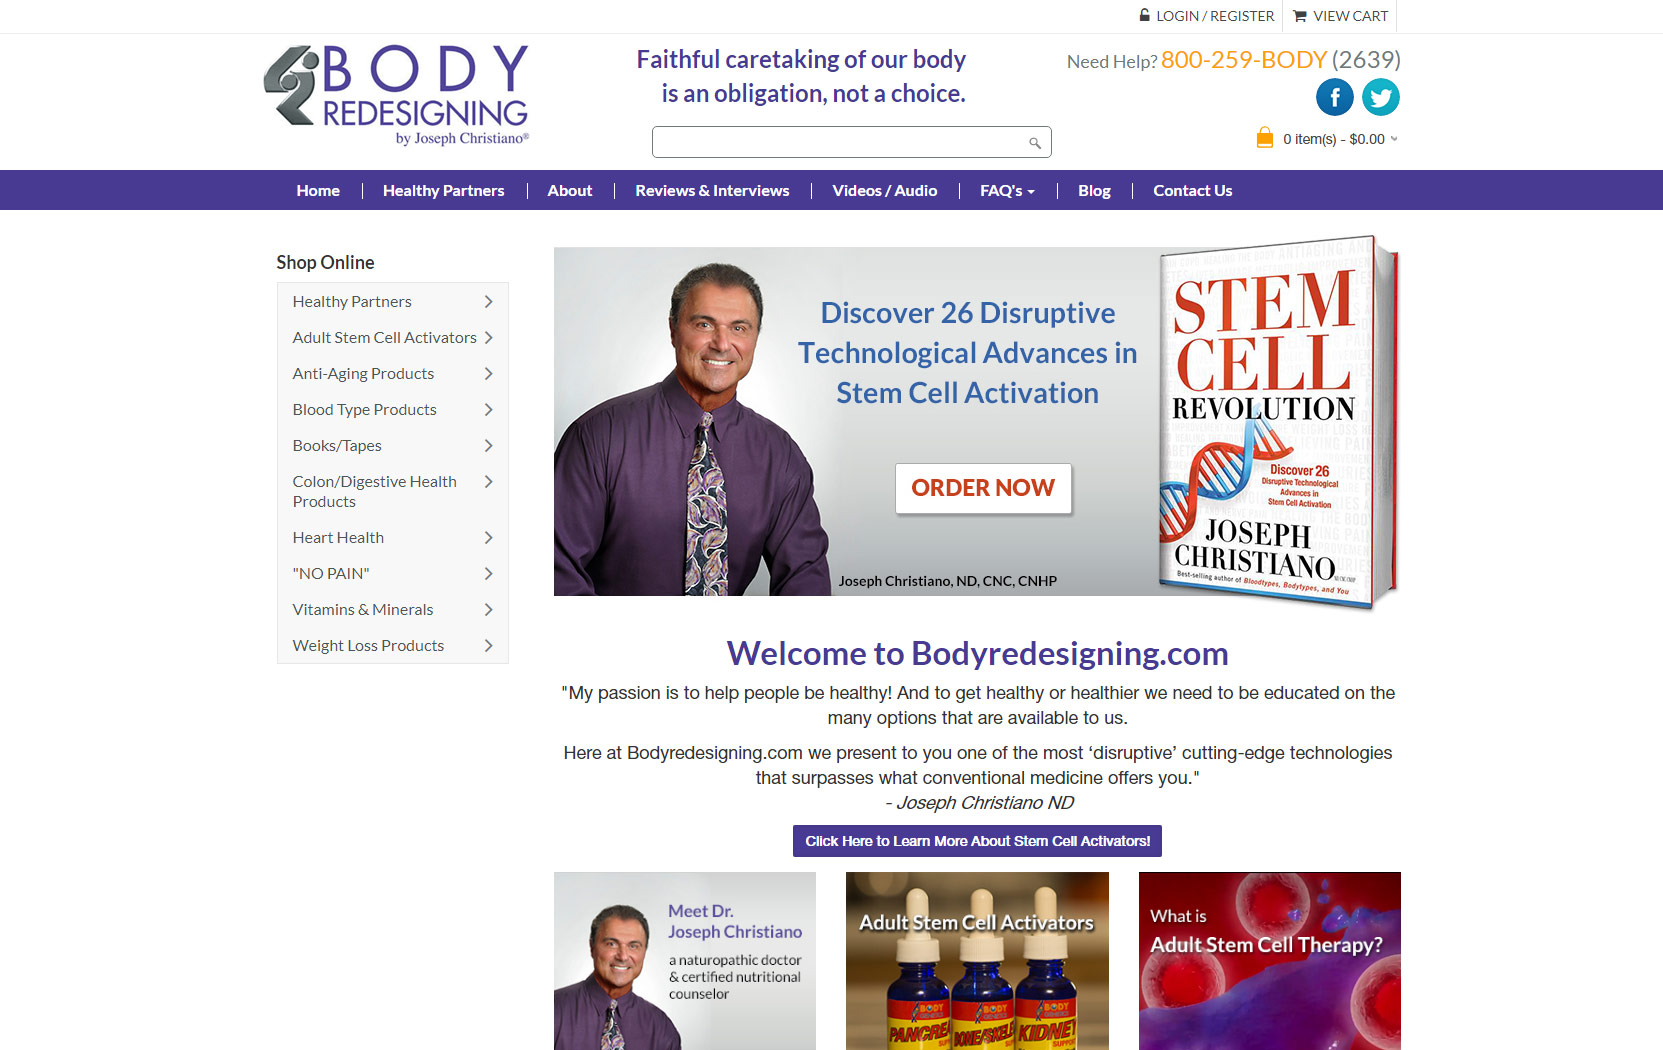 Body Redesigning by Joseph Christiano